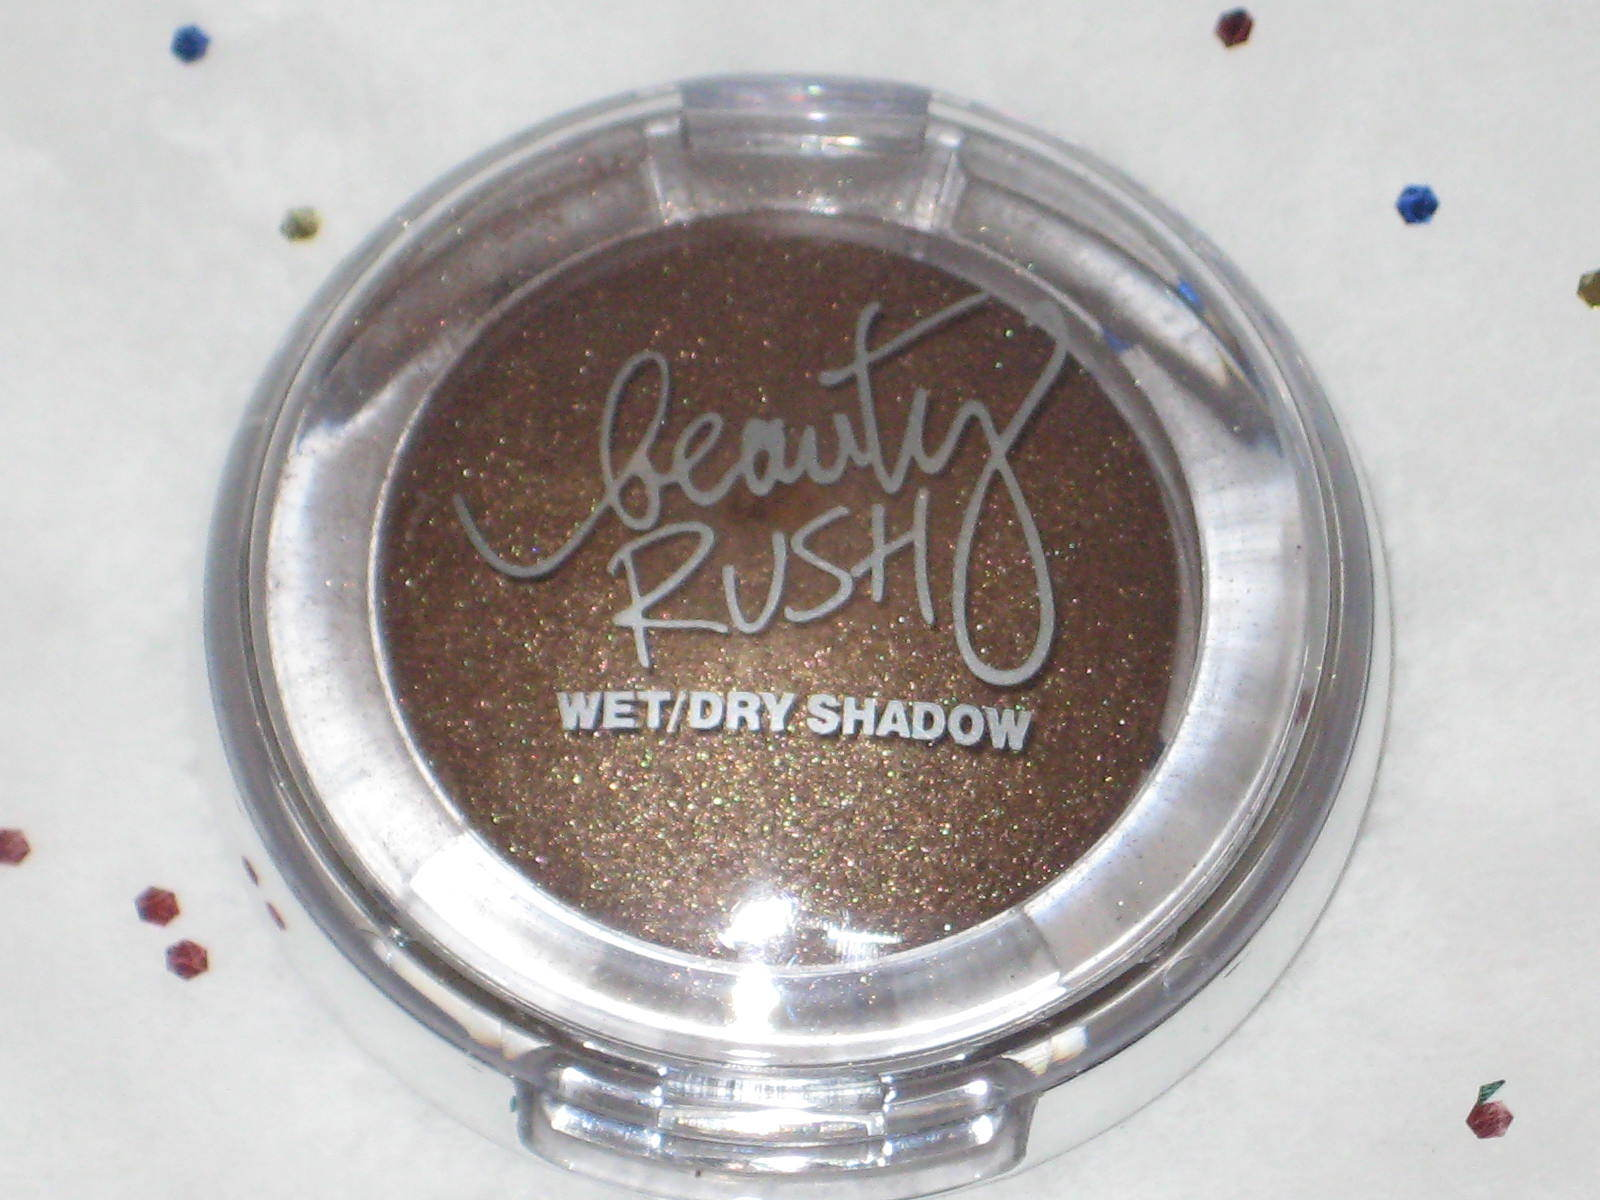 Primary image for Victoria's Secret Beauty Rush Wet/Dry Shadow in Bronzinger